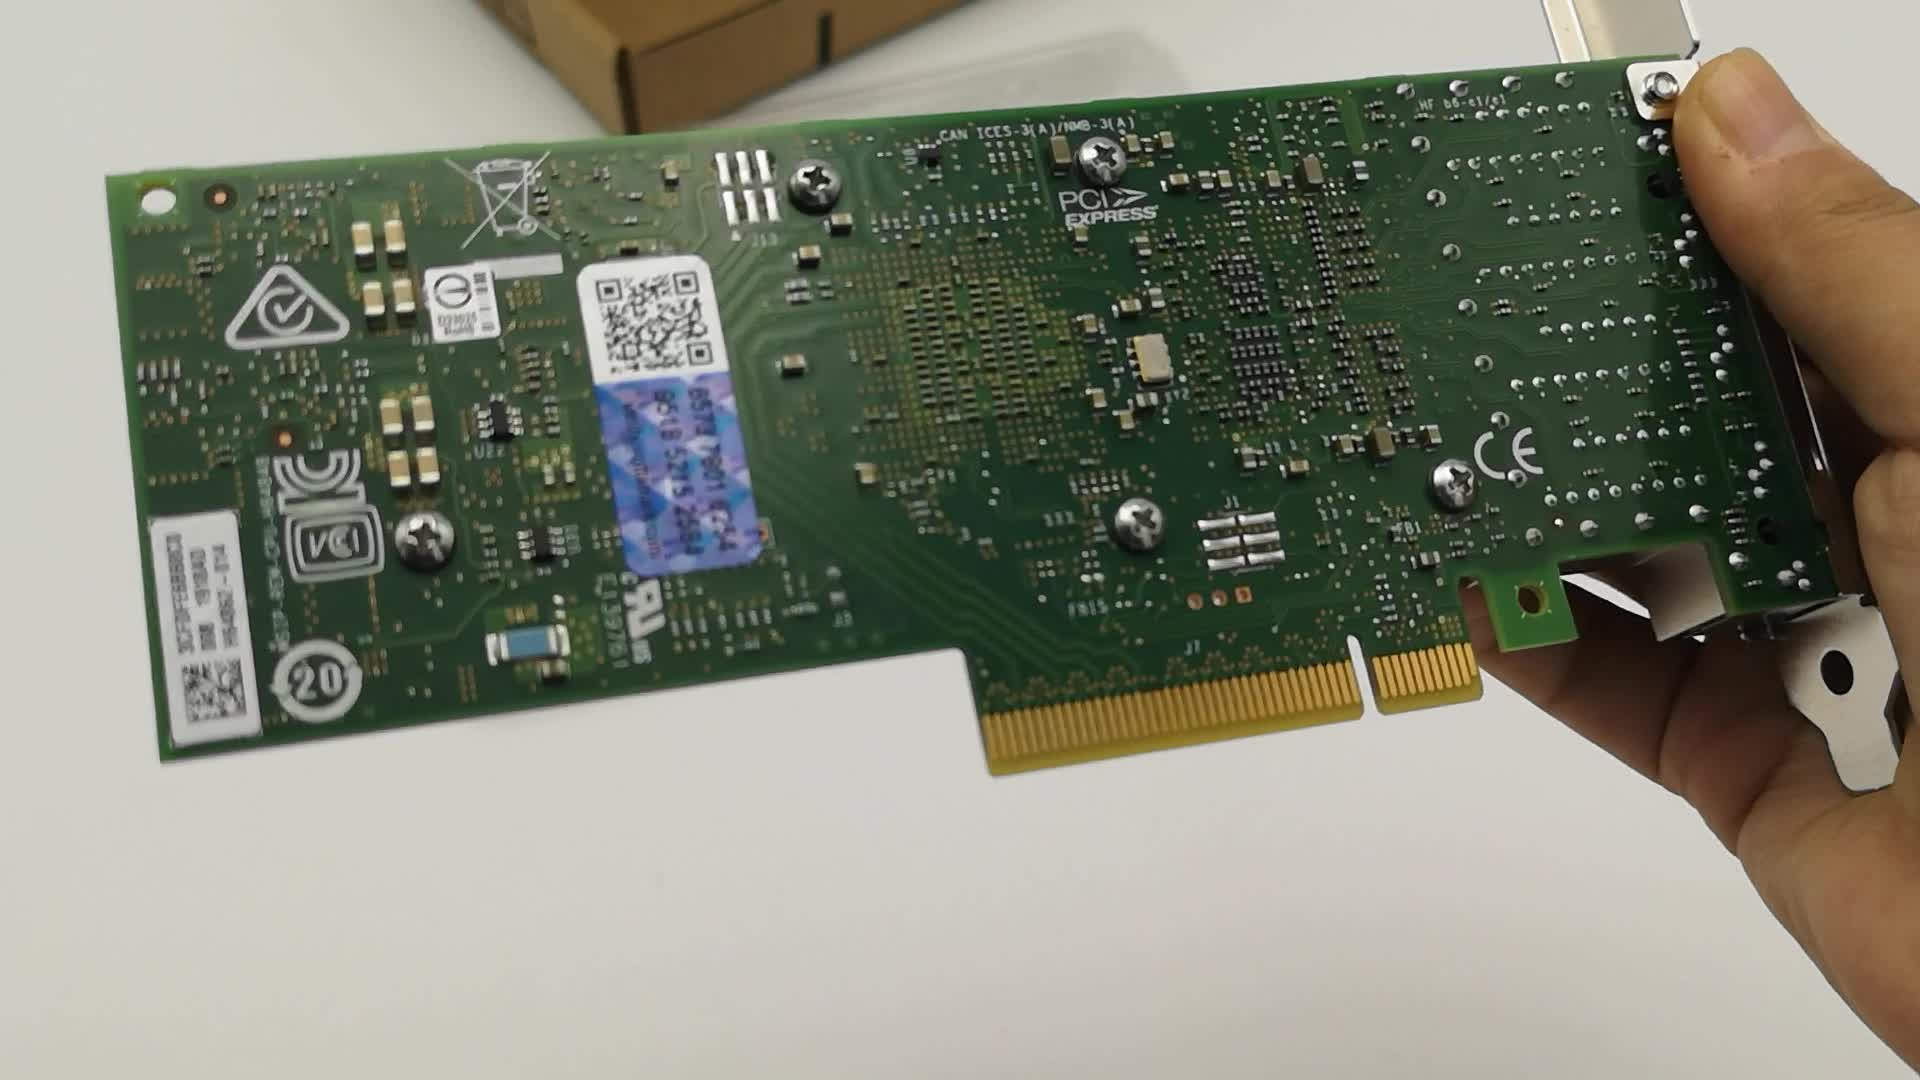 4-port NIC 10GbE PCIE Ethernet Converged Network Adapter X710-T4